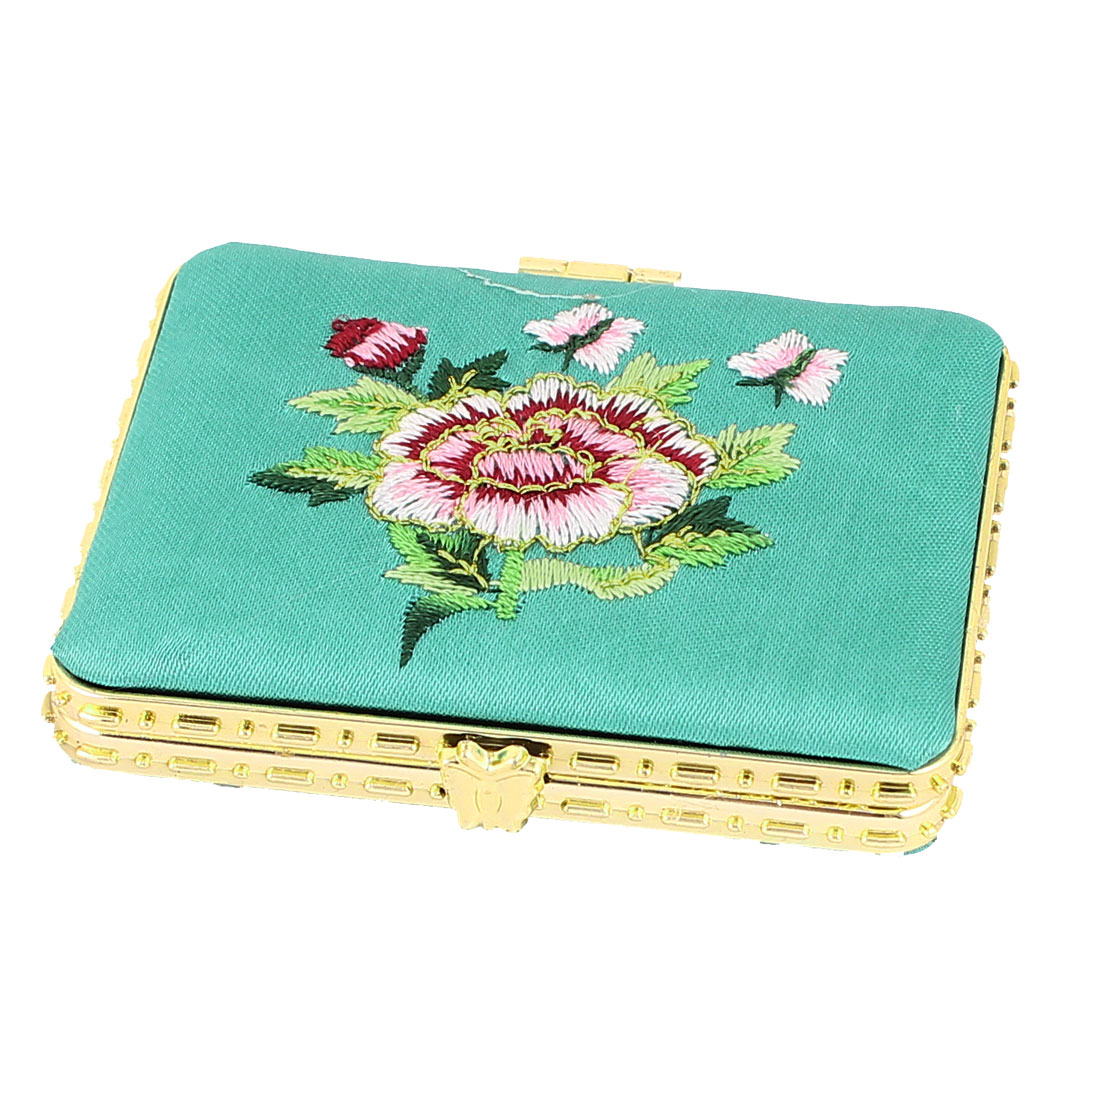 Silk Embroidery Rectangular Folding Pocket Makeup Cosmetic Mirror Turquoise - image 3 of 3